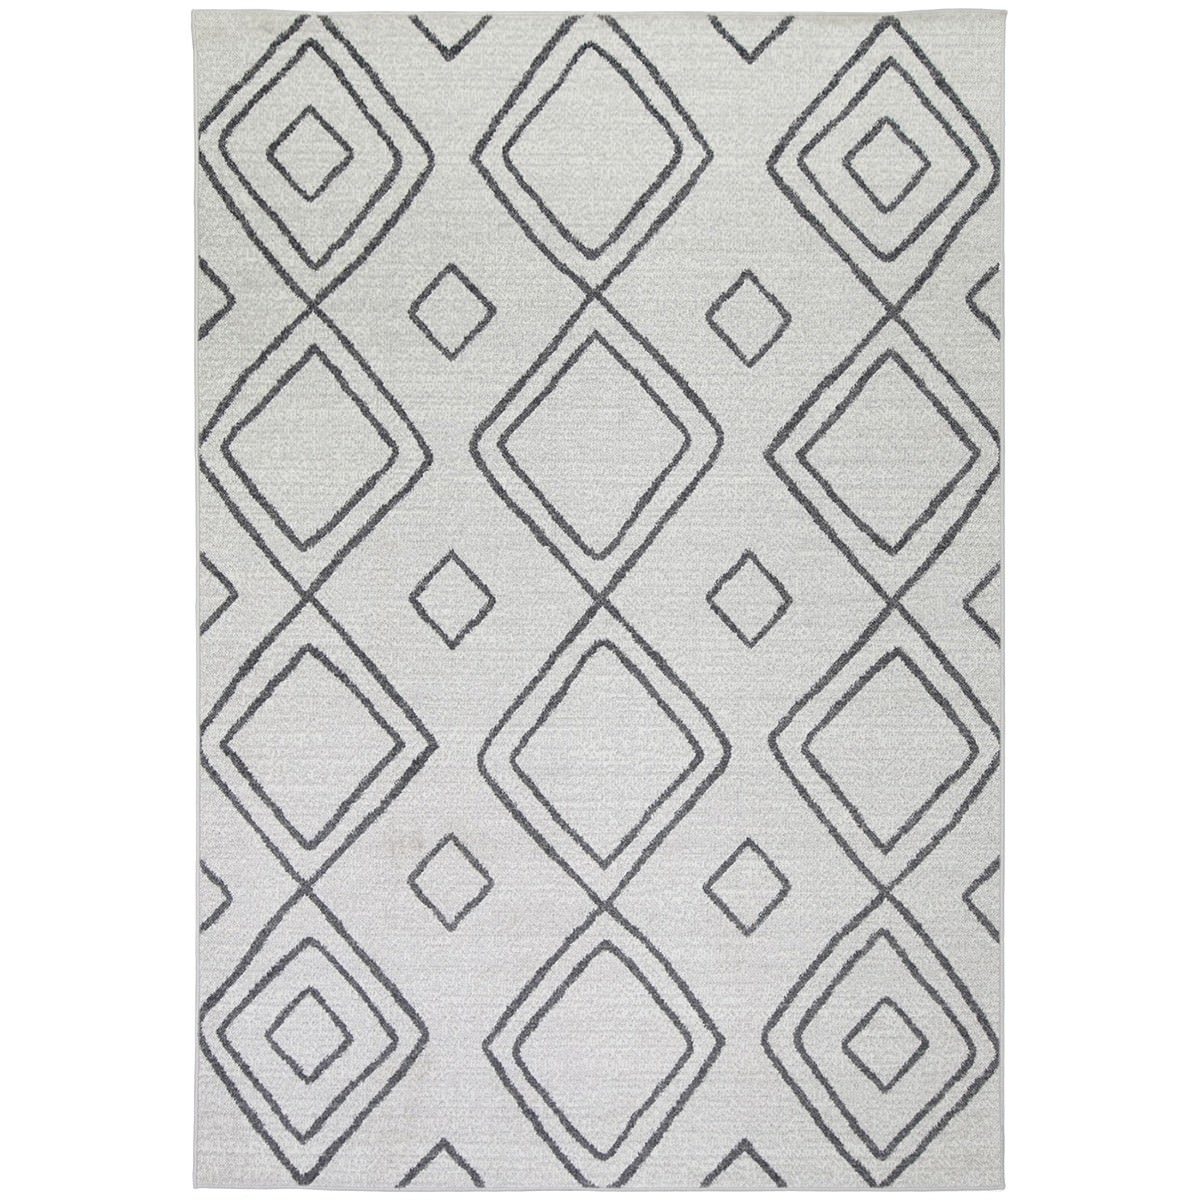 Courtyard Marrakesh Modern Rug, 150x80cm, Ivory / Grey